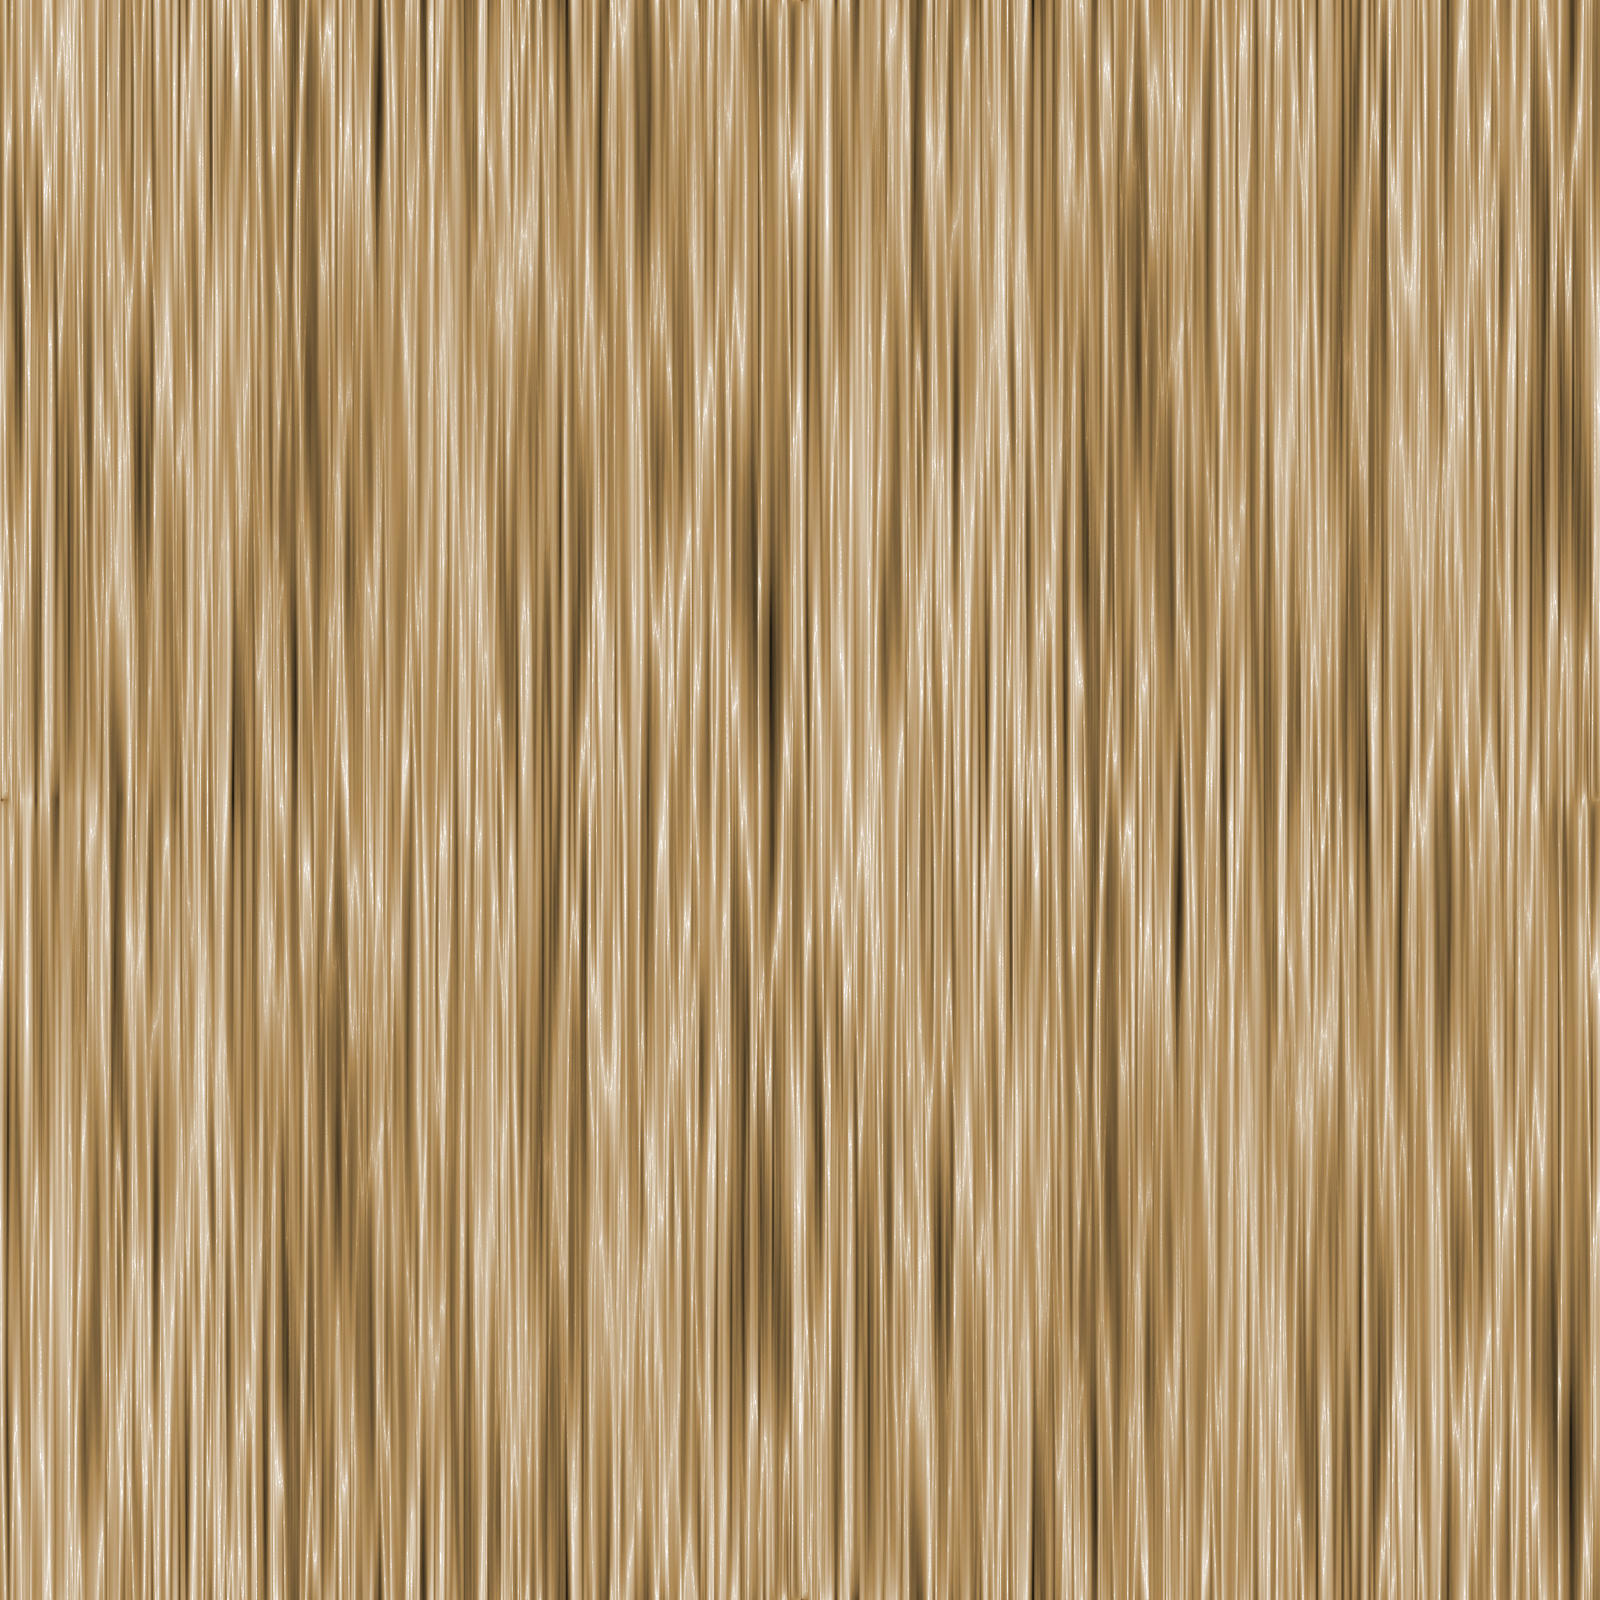 Hand Drawn Hair Texture By Tyrisen On Deviantart